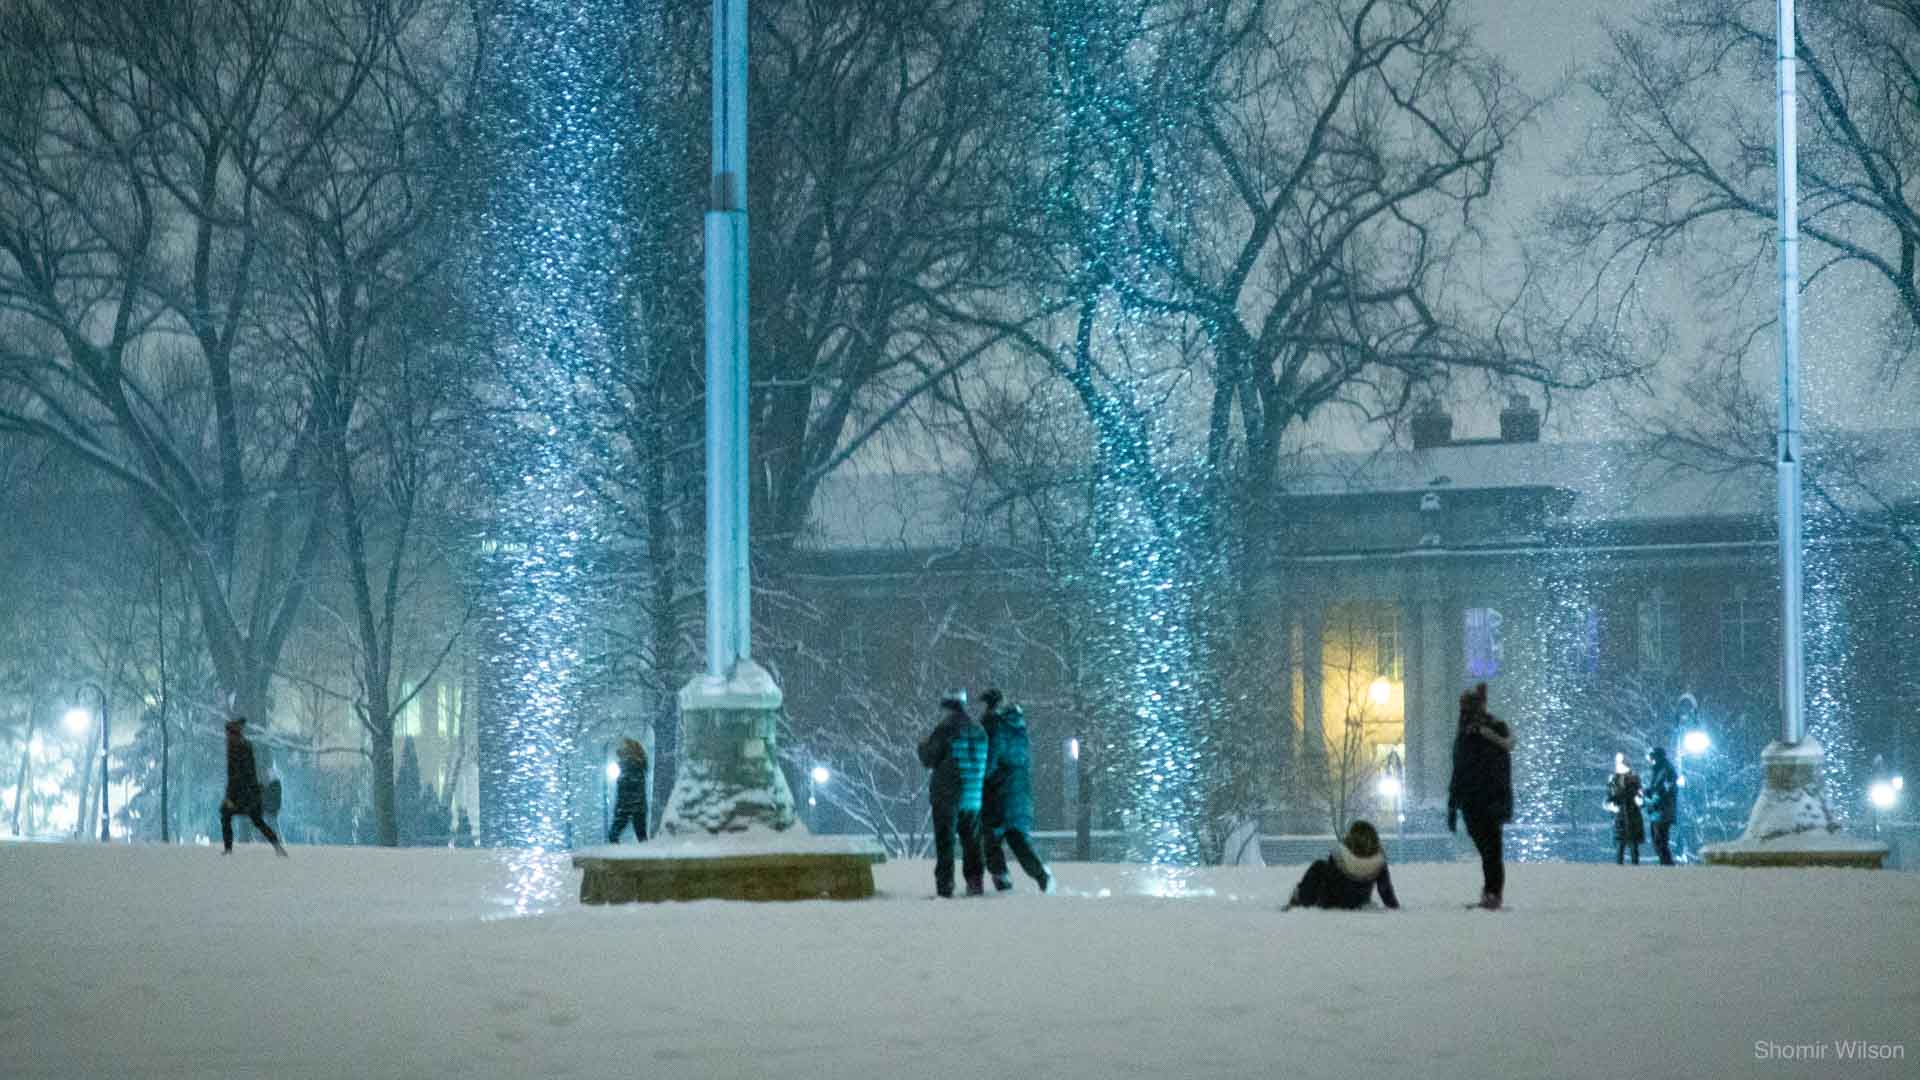 Snow and students on the front lawn of Old Main at Penn State